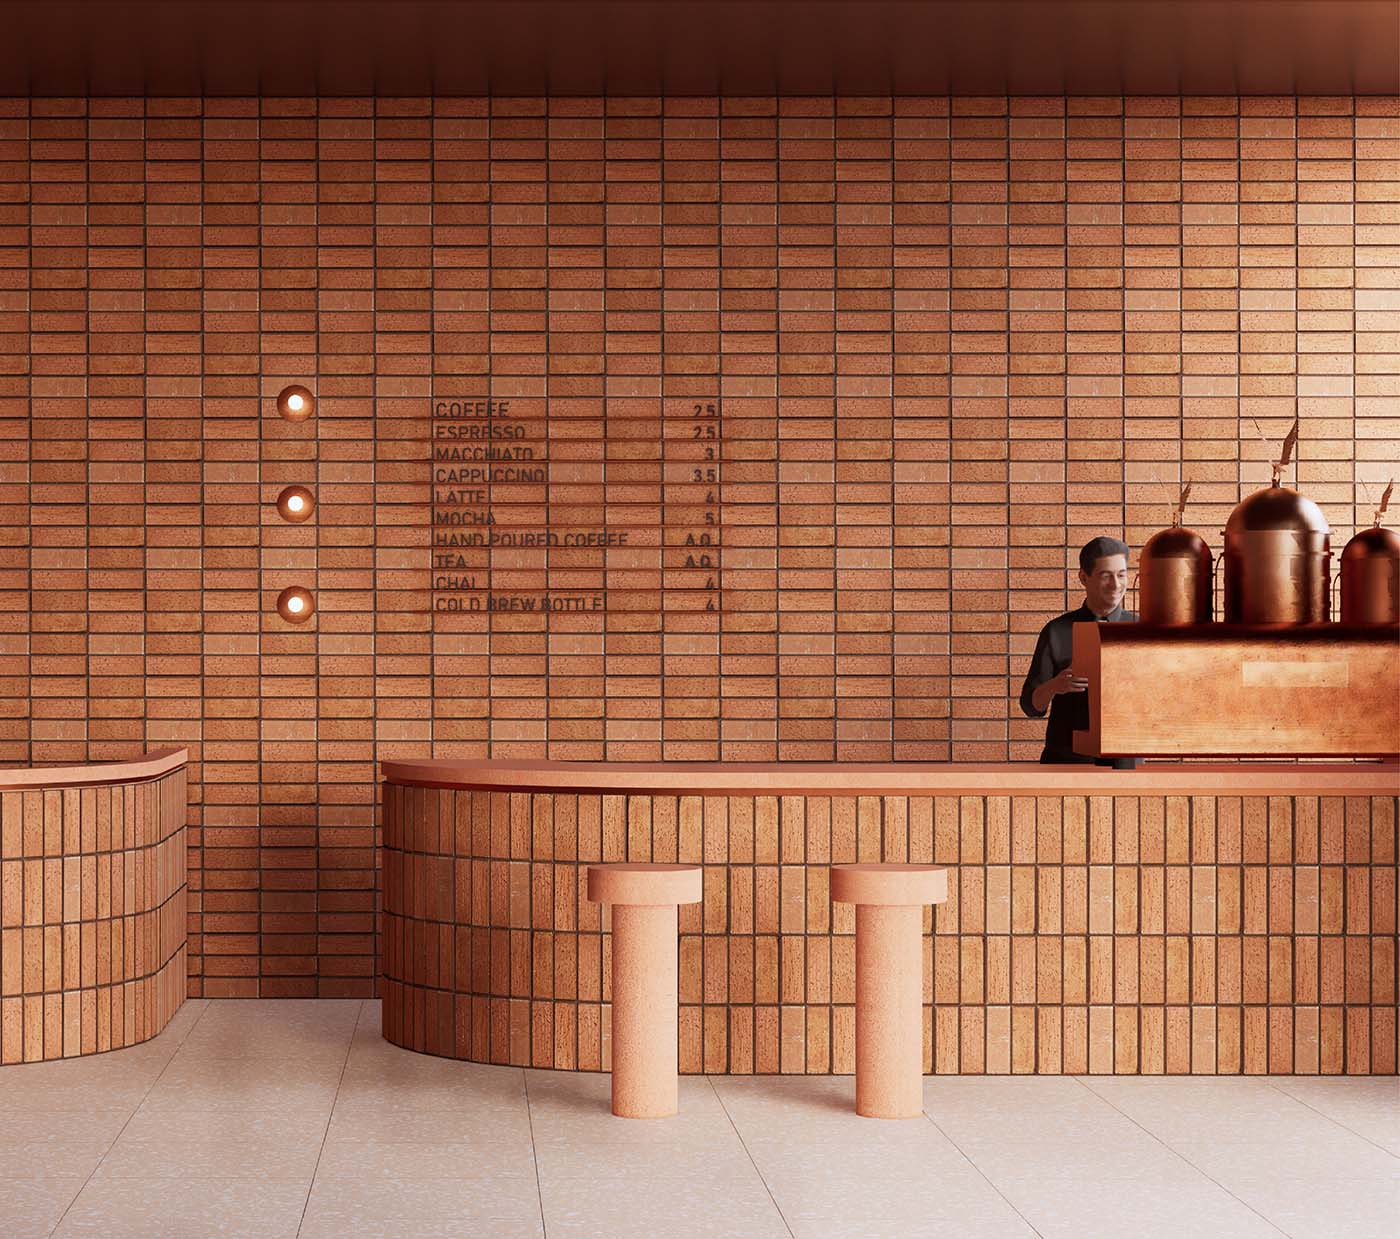 Coffee bar using a brick design as an extension of the exterior architecture.